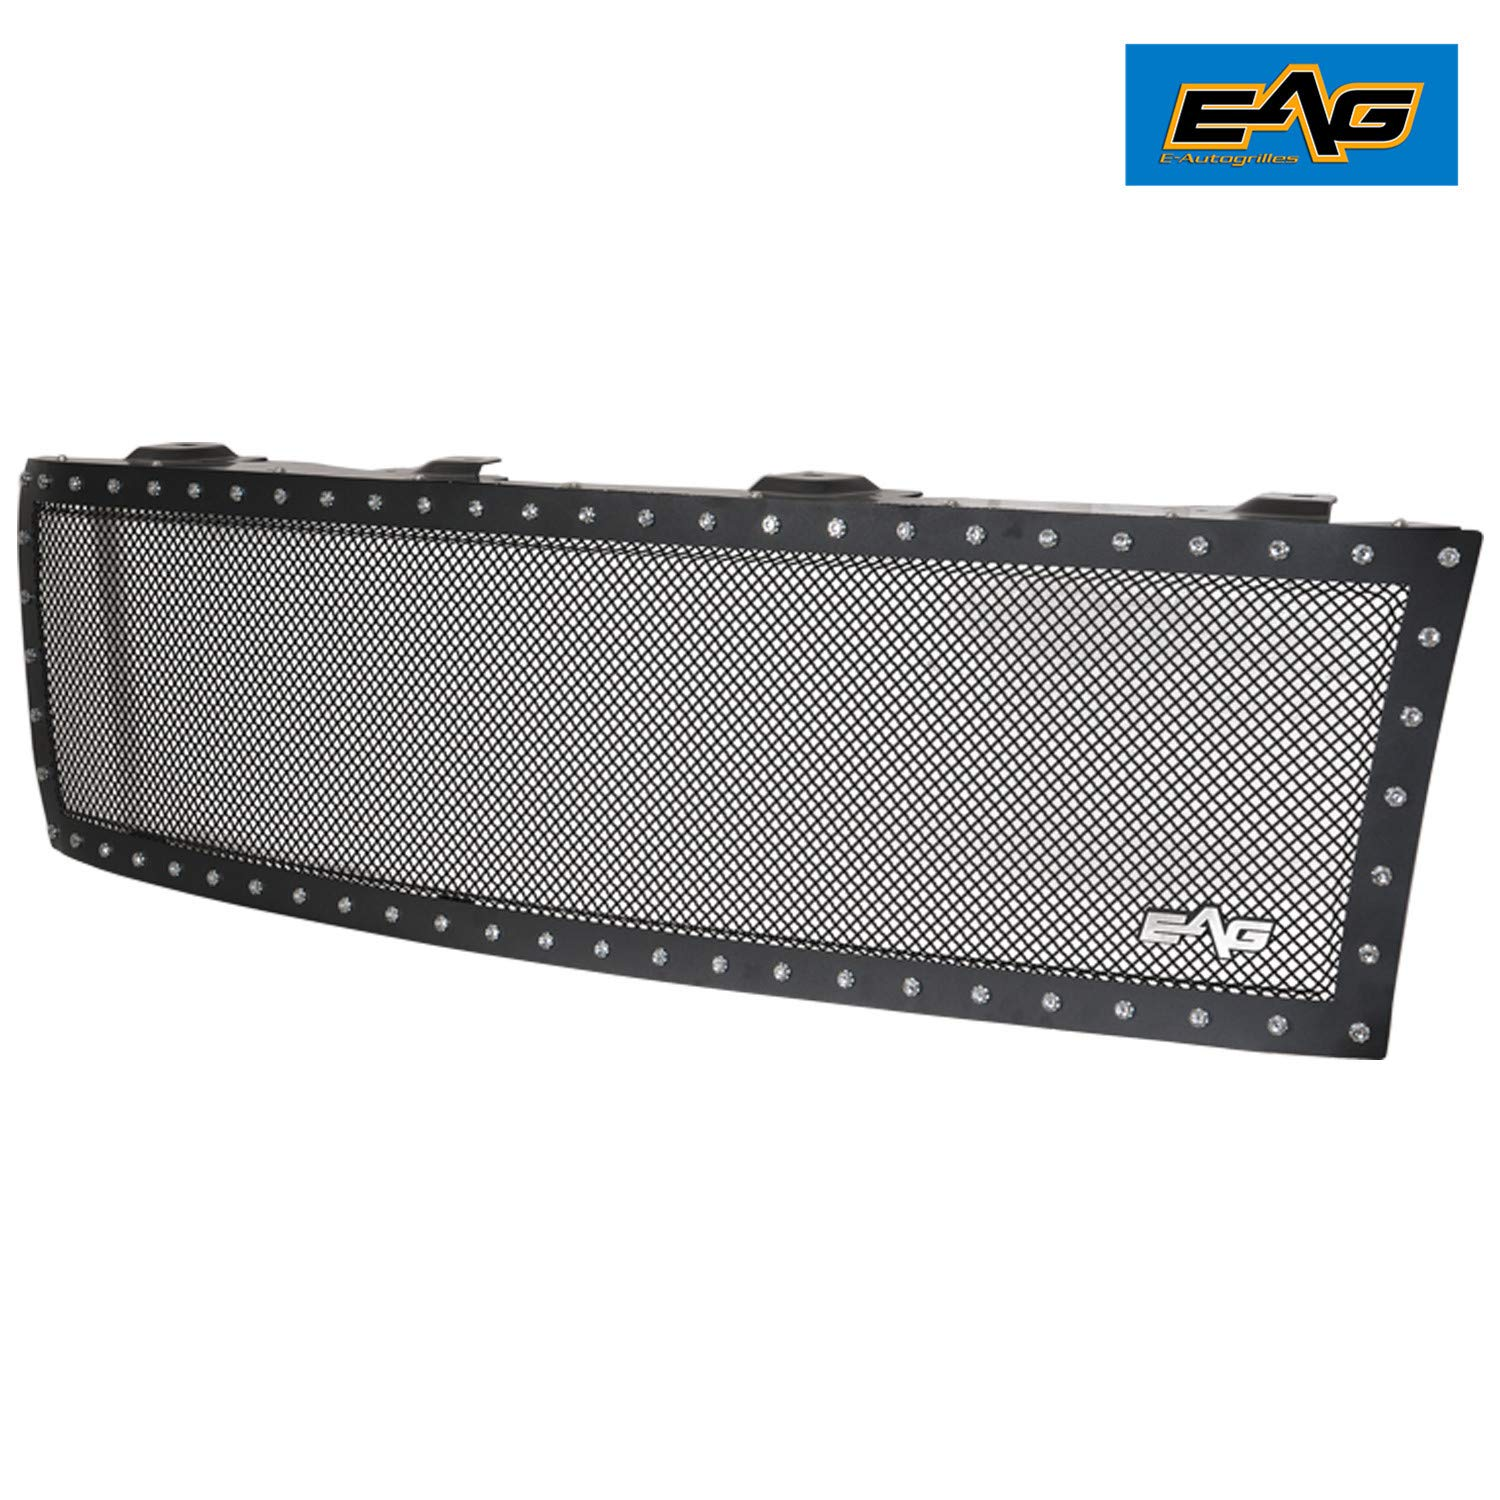 EAG Rivet SS Wire Mesh Grille Fit for 2007-2010 Chevrolet Silverado 2500HD//3500HD